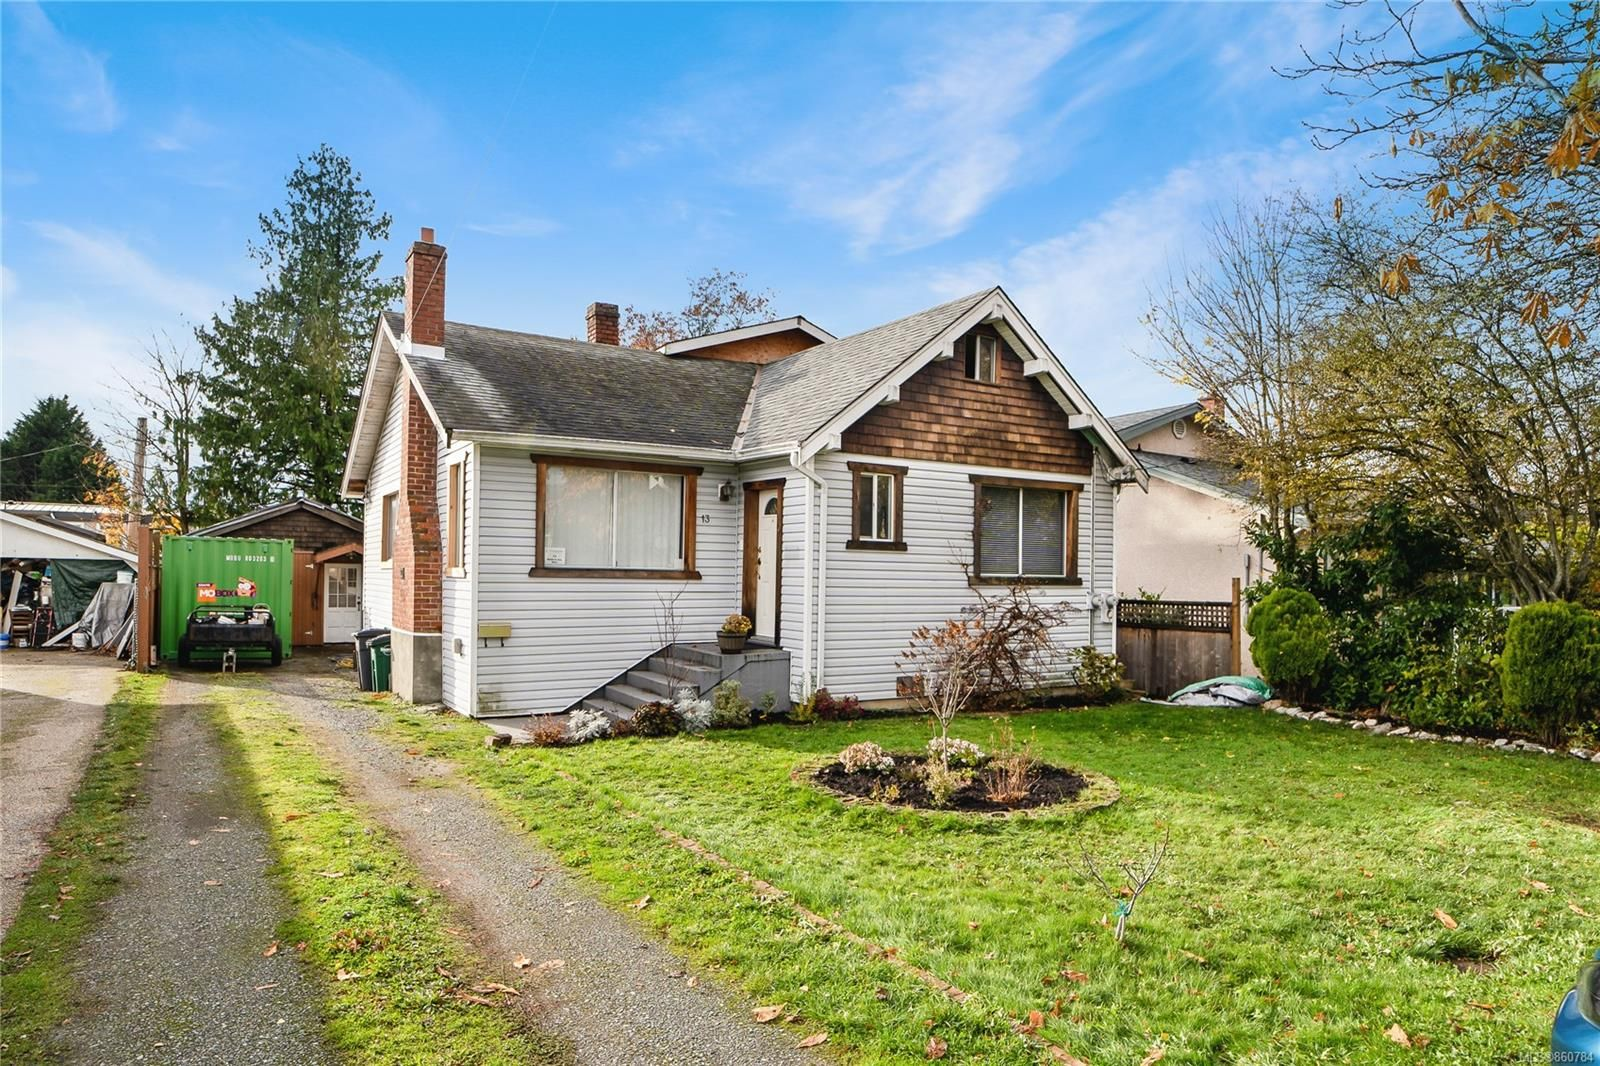 Main Photo: 13 W Maddock Ave in Saanich: SW Gorge House for sale (Saanich West)  : MLS®# 860784